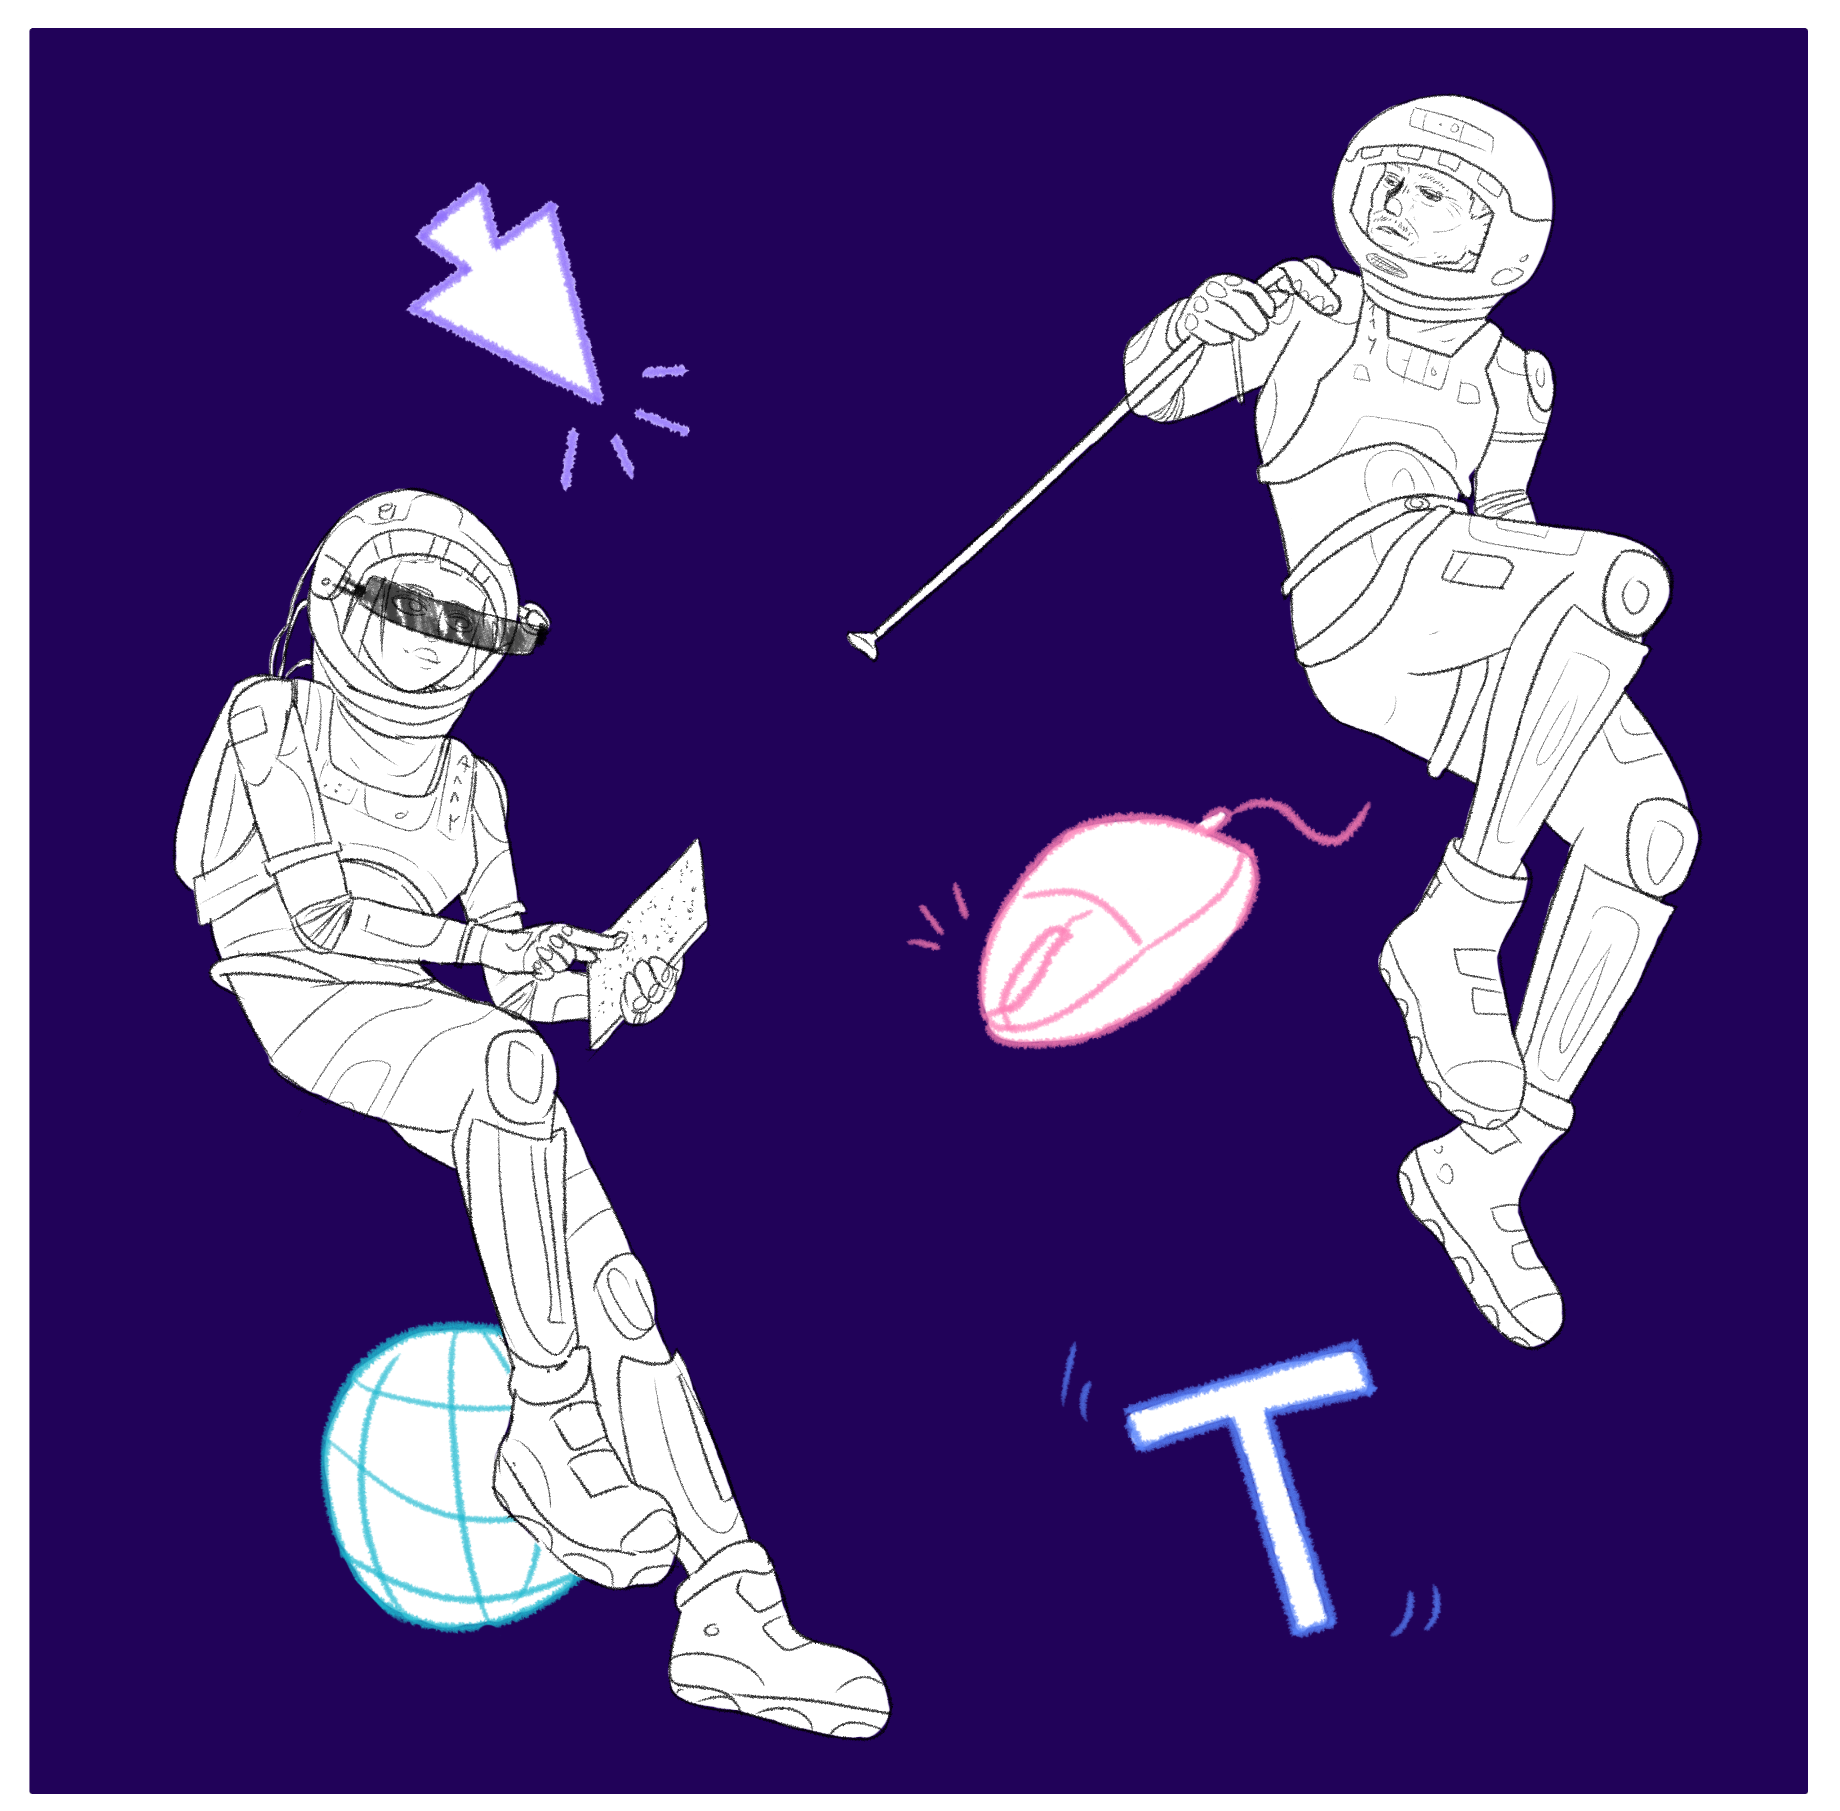 A blind woman and an old man with a stick in space suits with some design symbols